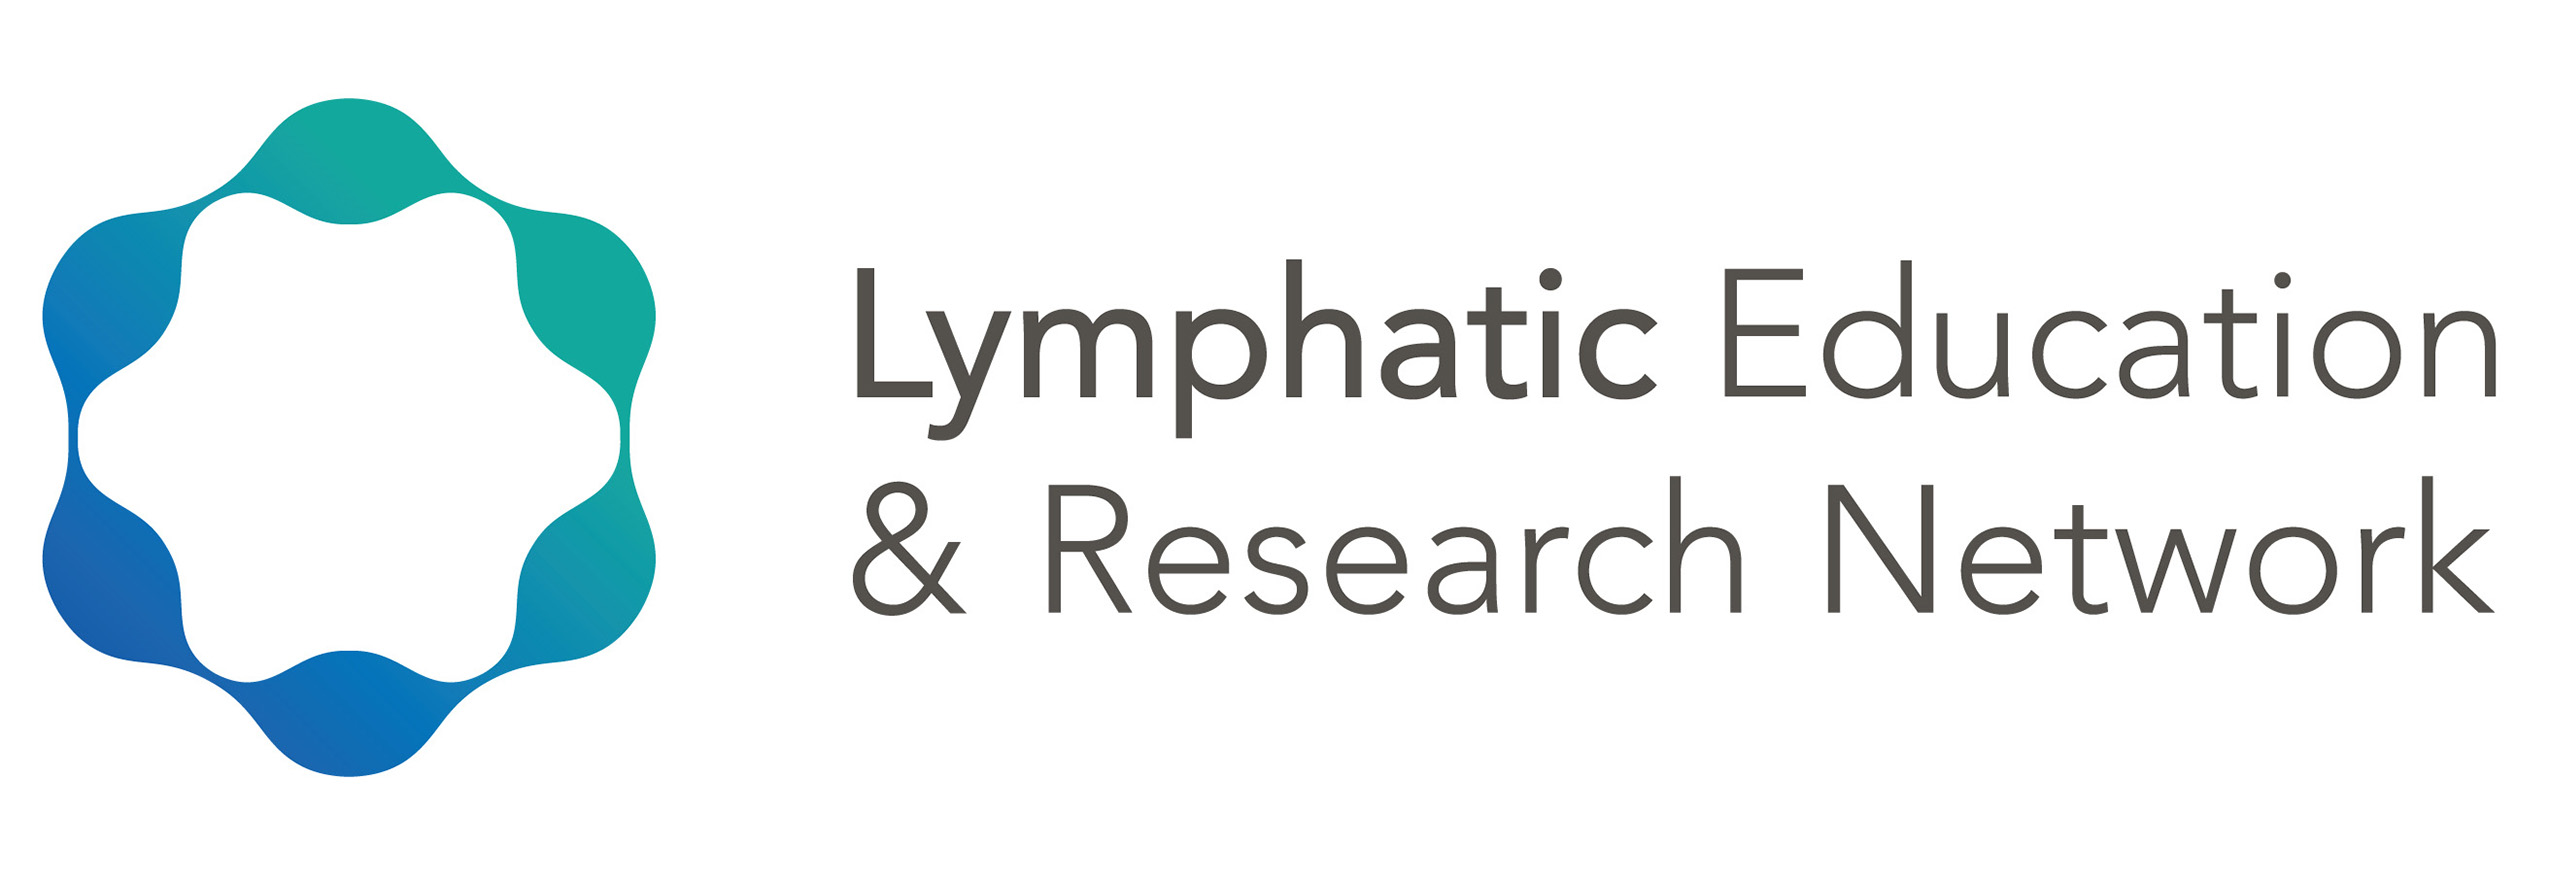 Lymphatic Education & Research Network (LE&RN)